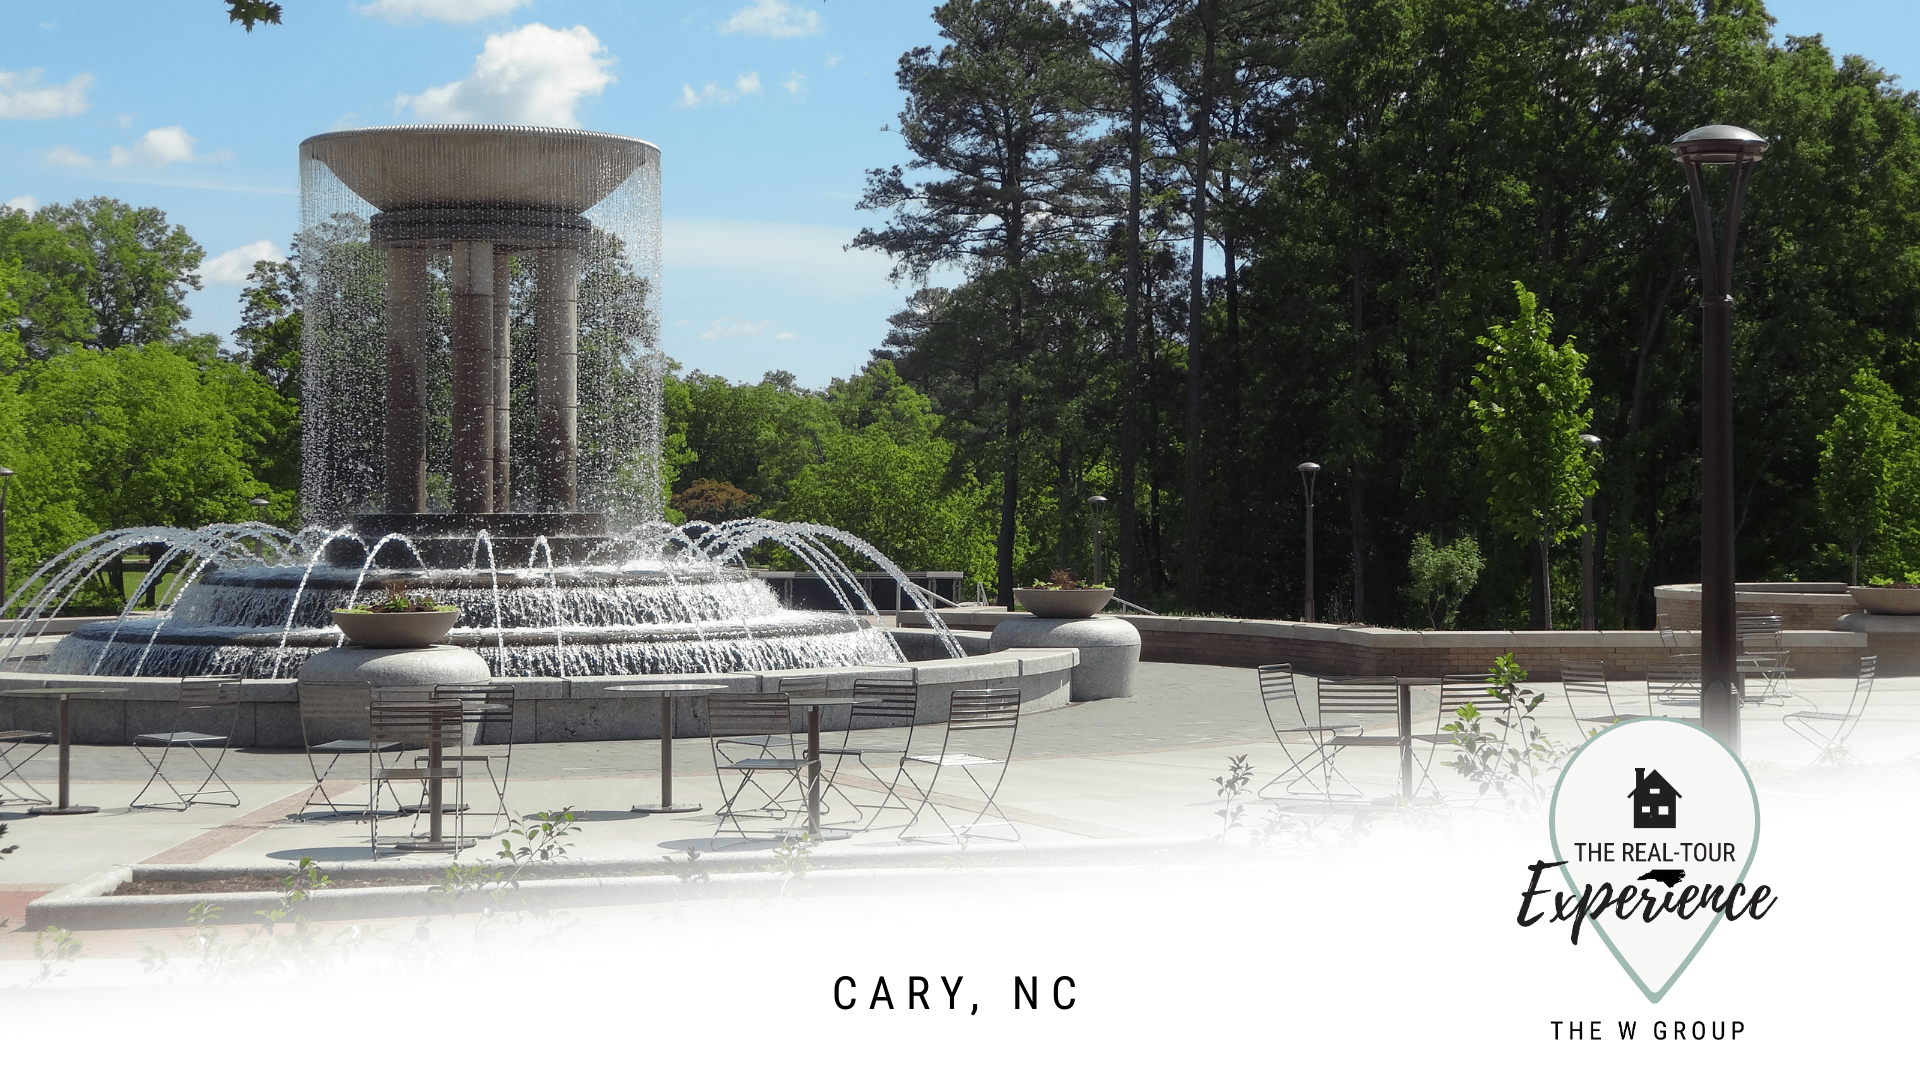 Real-Tour Experience | Discover Cary